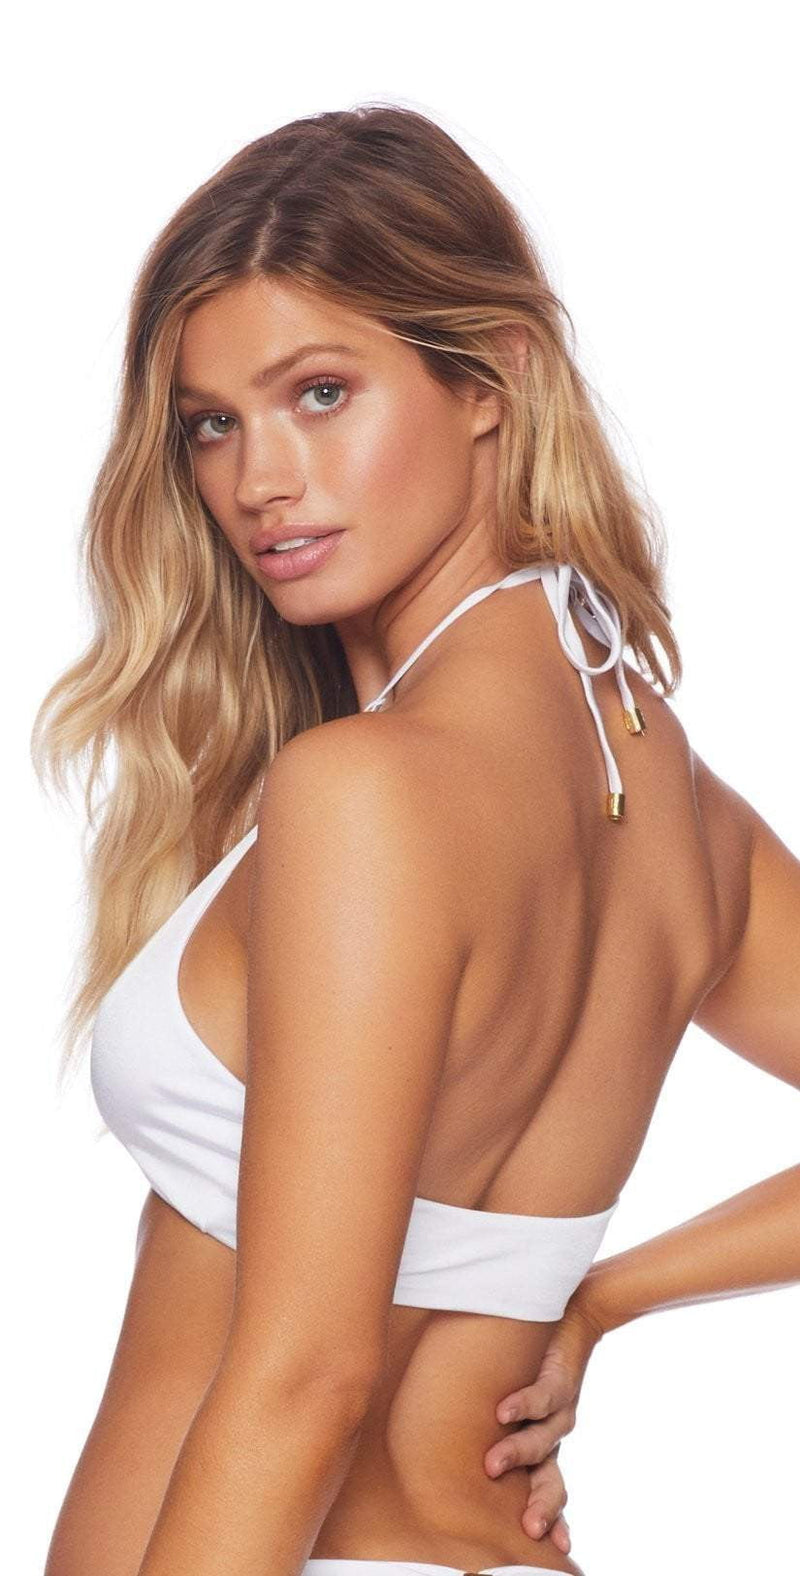 Beach Bunny Ireland Ring High Neck Top In White B18127T5-WHT: